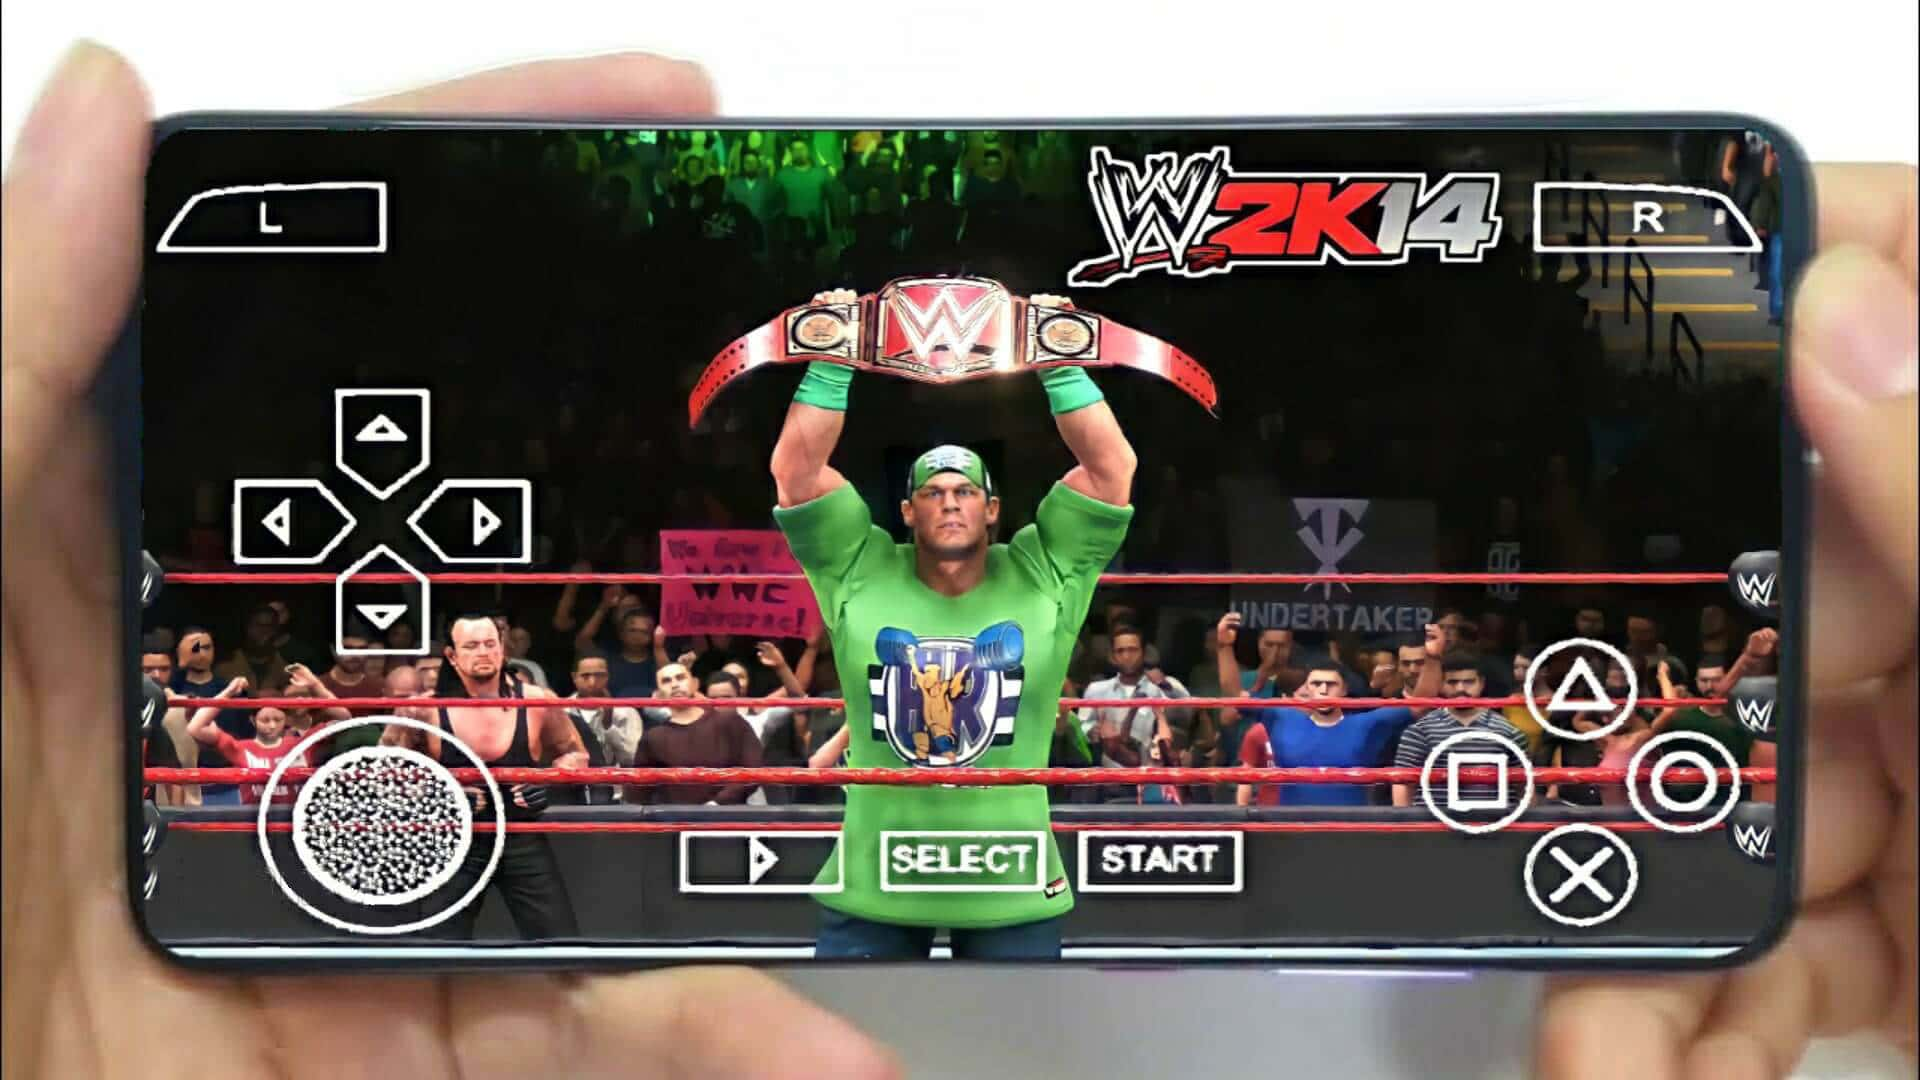 WWE 2K14 iSO PPSSPP for Android Download